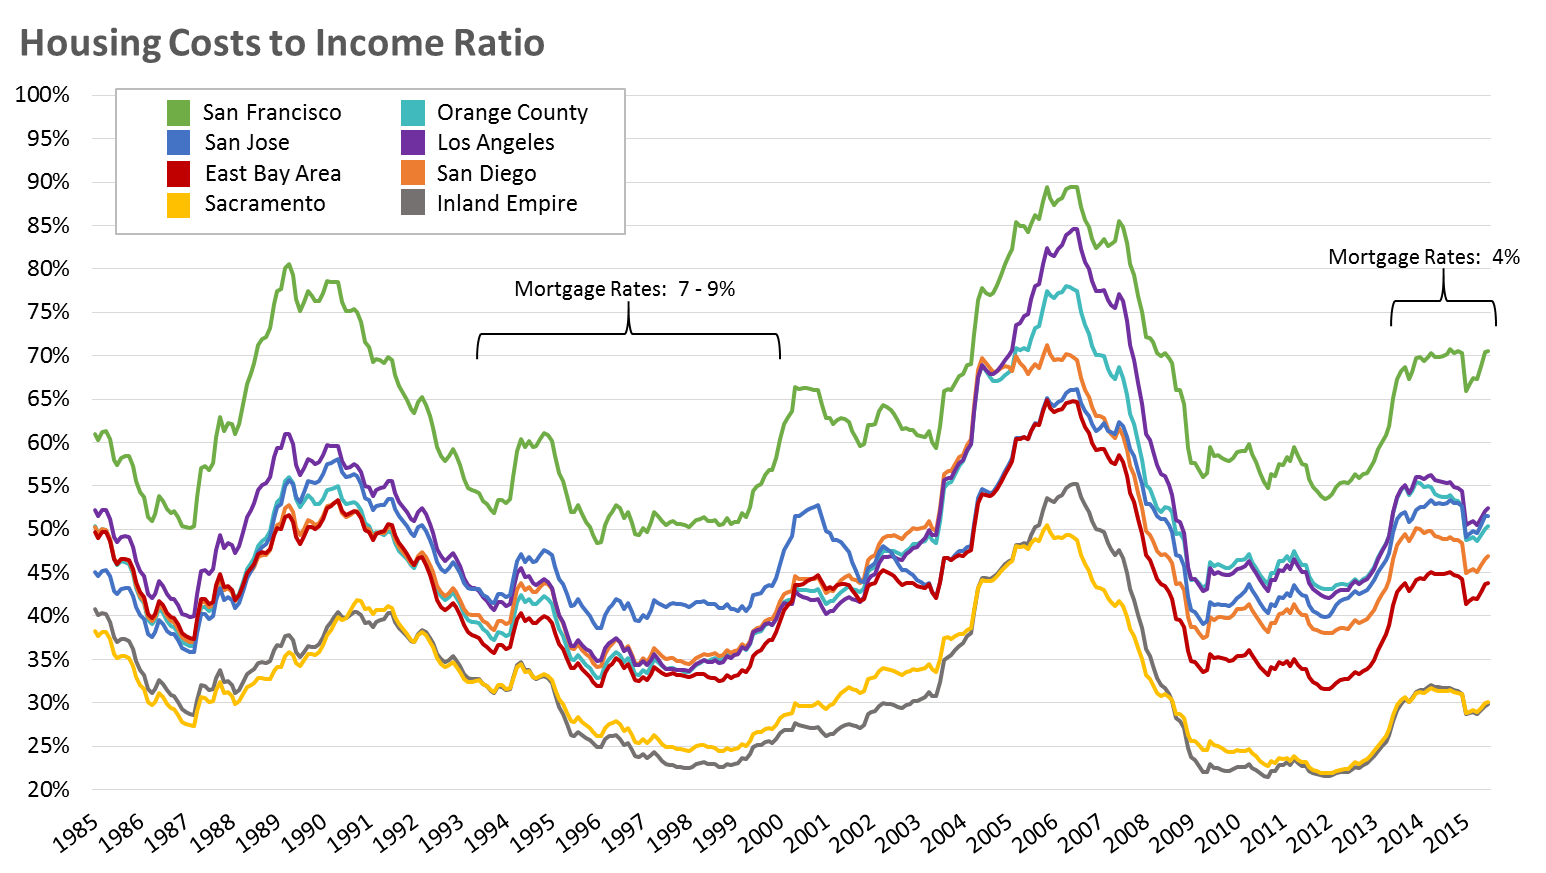 Californias Housing Costs To Income Ratios